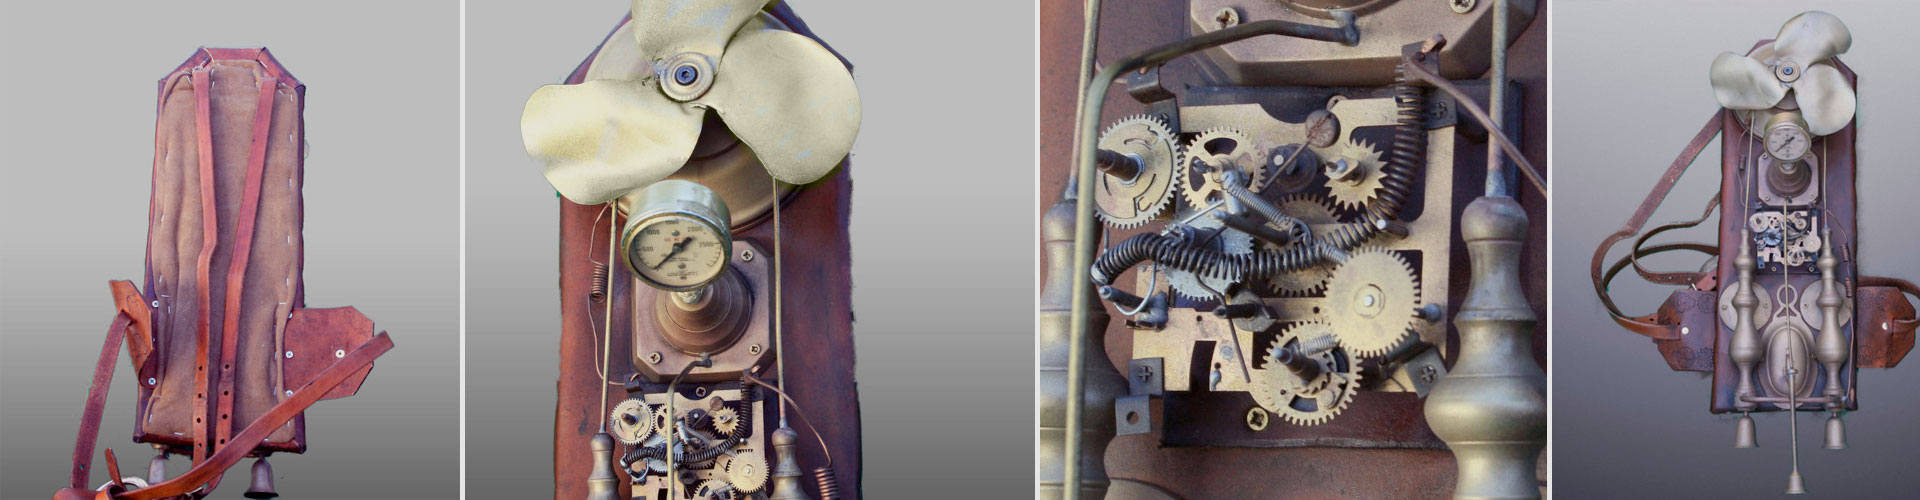 Steampunk Maniacs Backpack